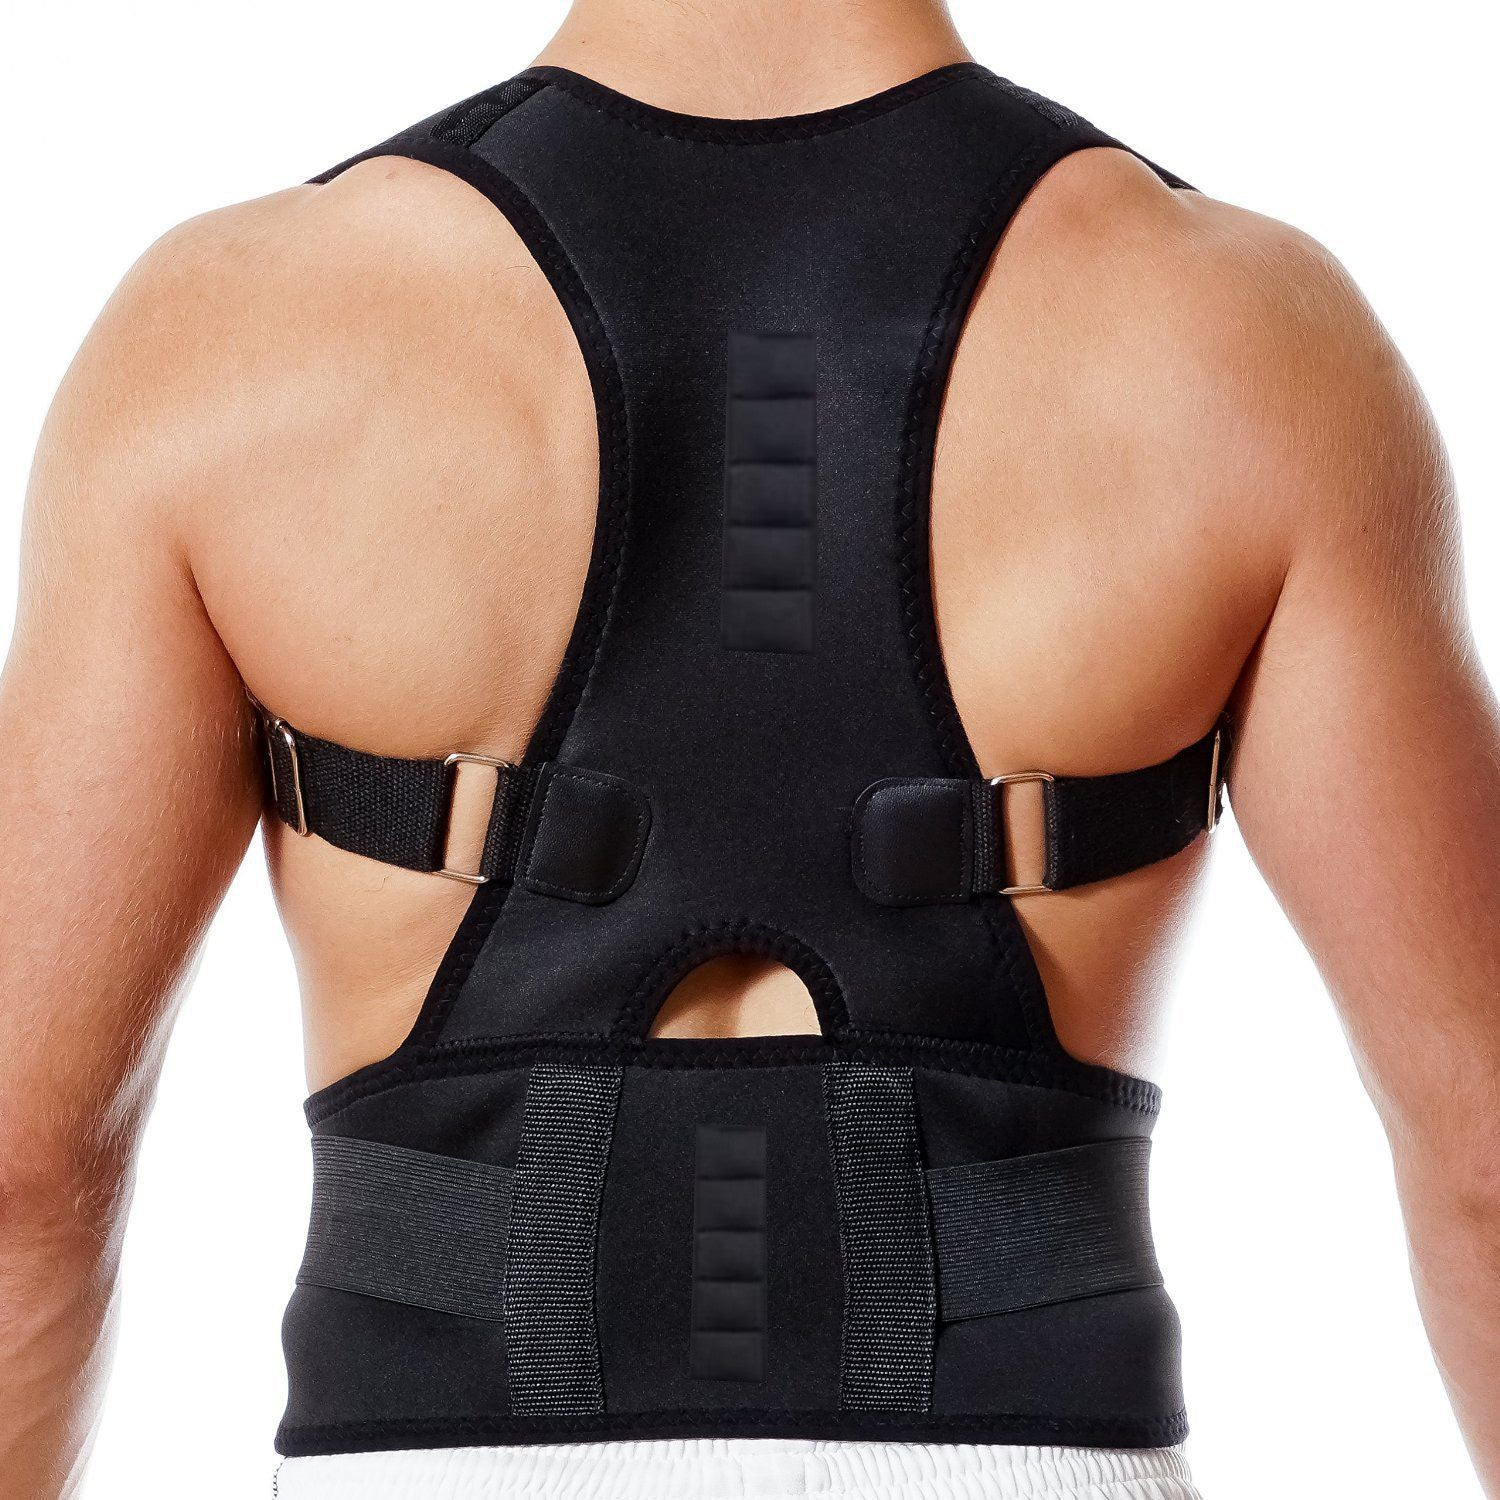 Magnetic Rehabilitation Posture Back Brace - Impact Performance Club